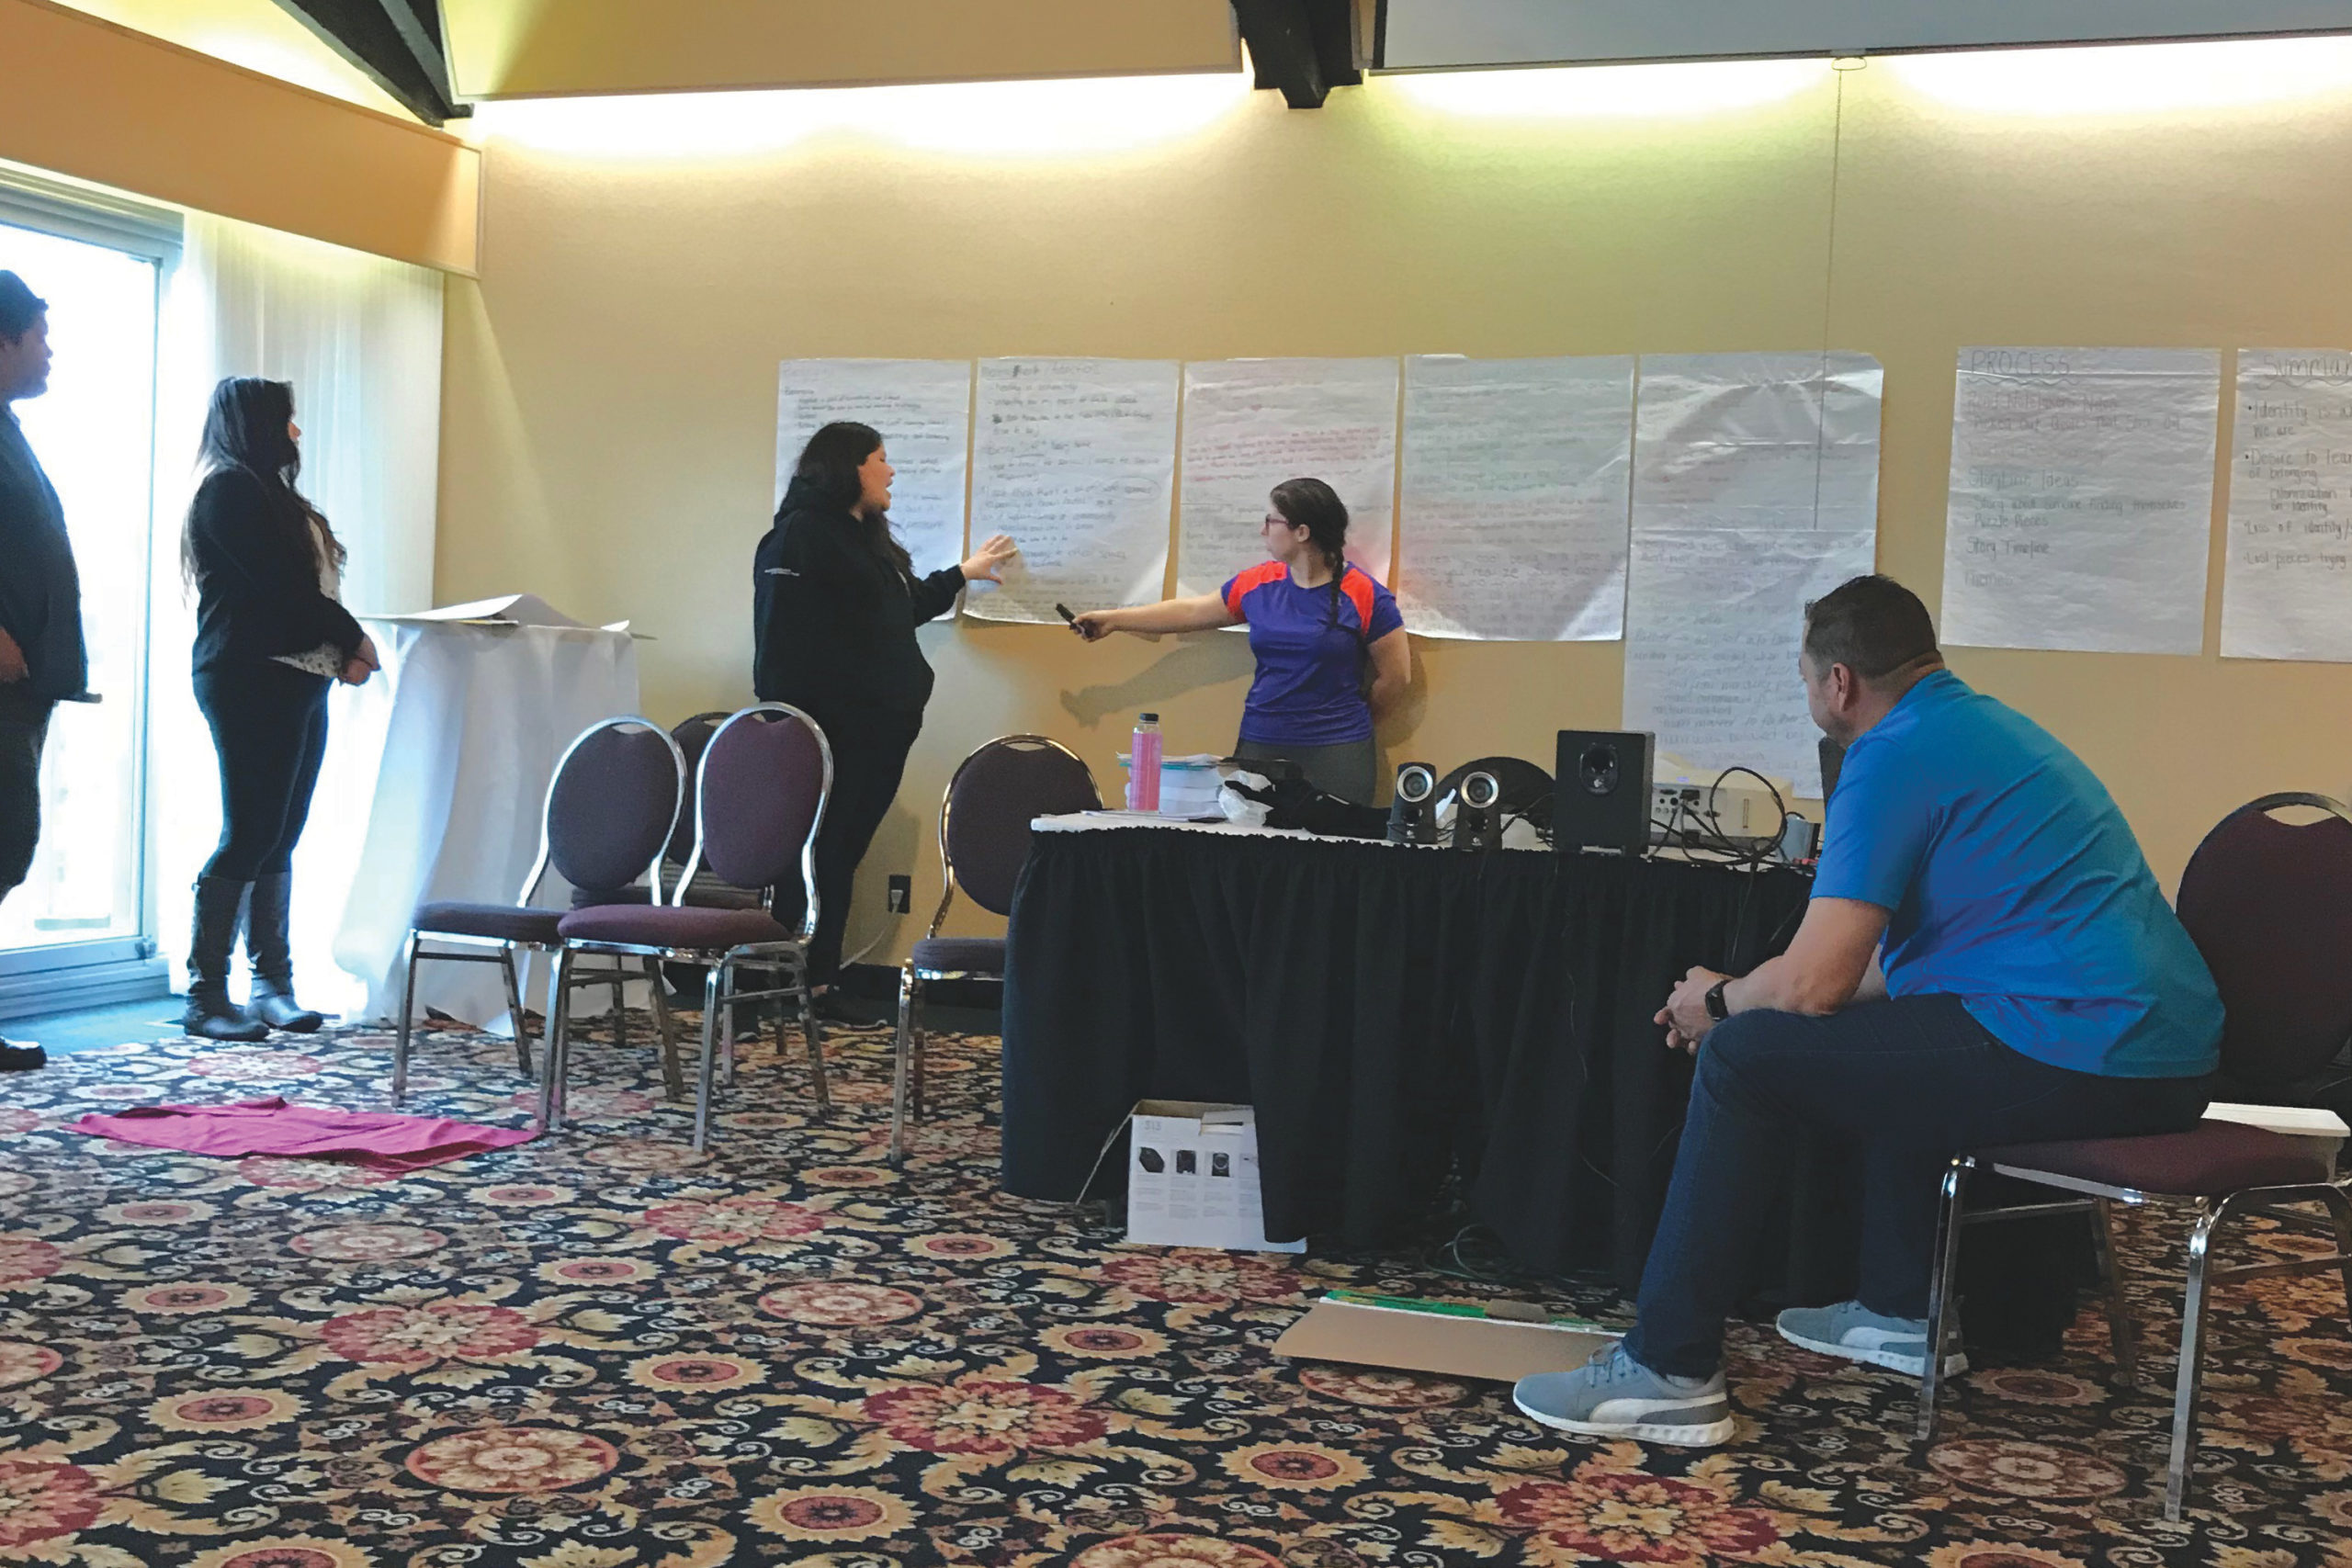 A photo of a group of young advisors presenting the findings of their work. Two advisors stand in front of several chart papers taped to the wall. One of them is pointing to an area of the paper while another one talks. Three other people stand in front of them, listening attentively.